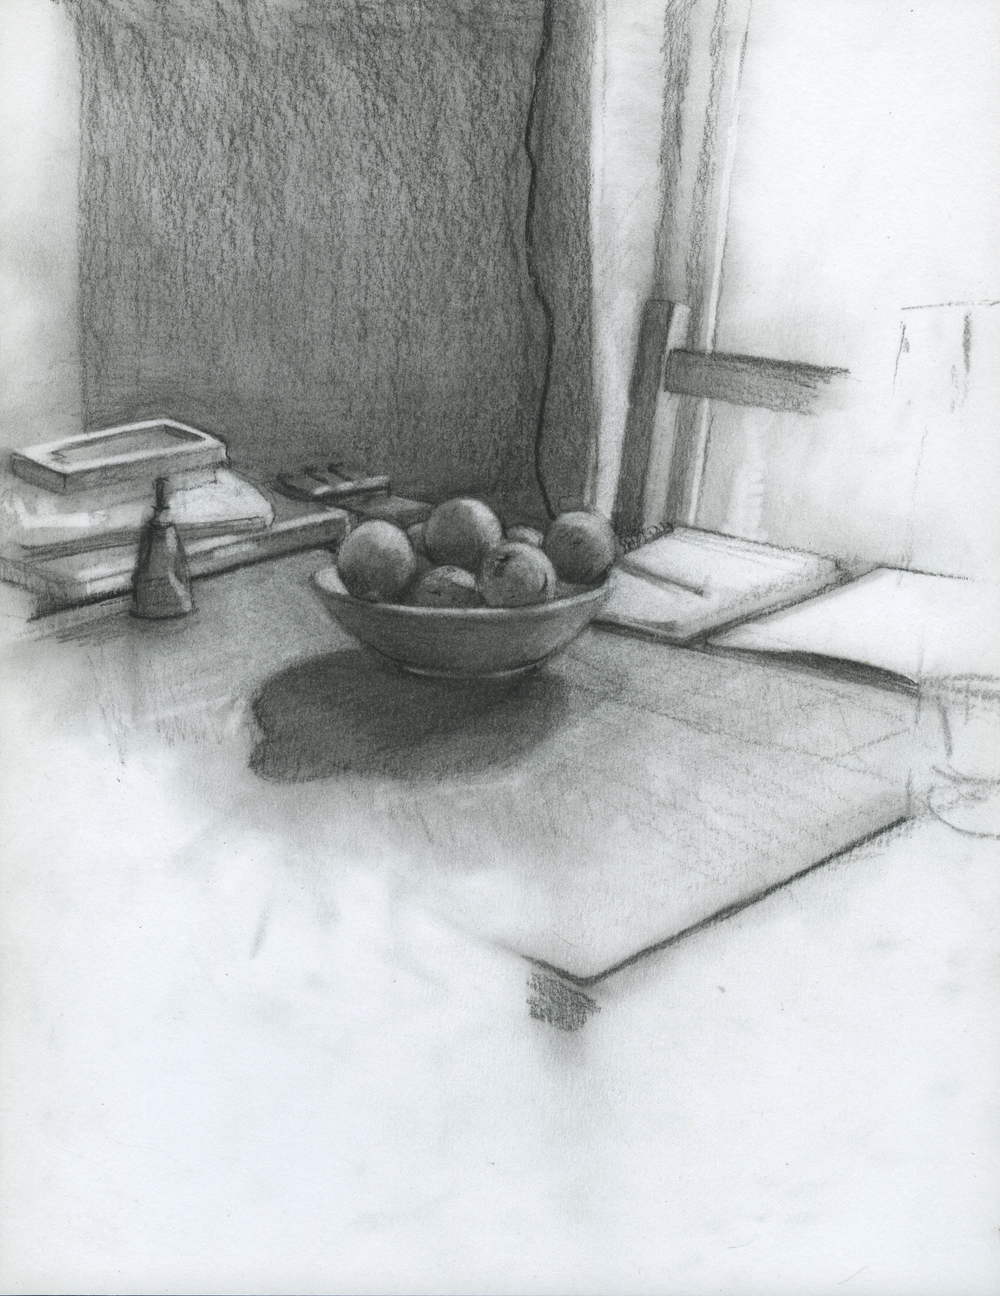 """Household Activities, charcoal on paper, 11"""" x 8.5"""", 2014"""